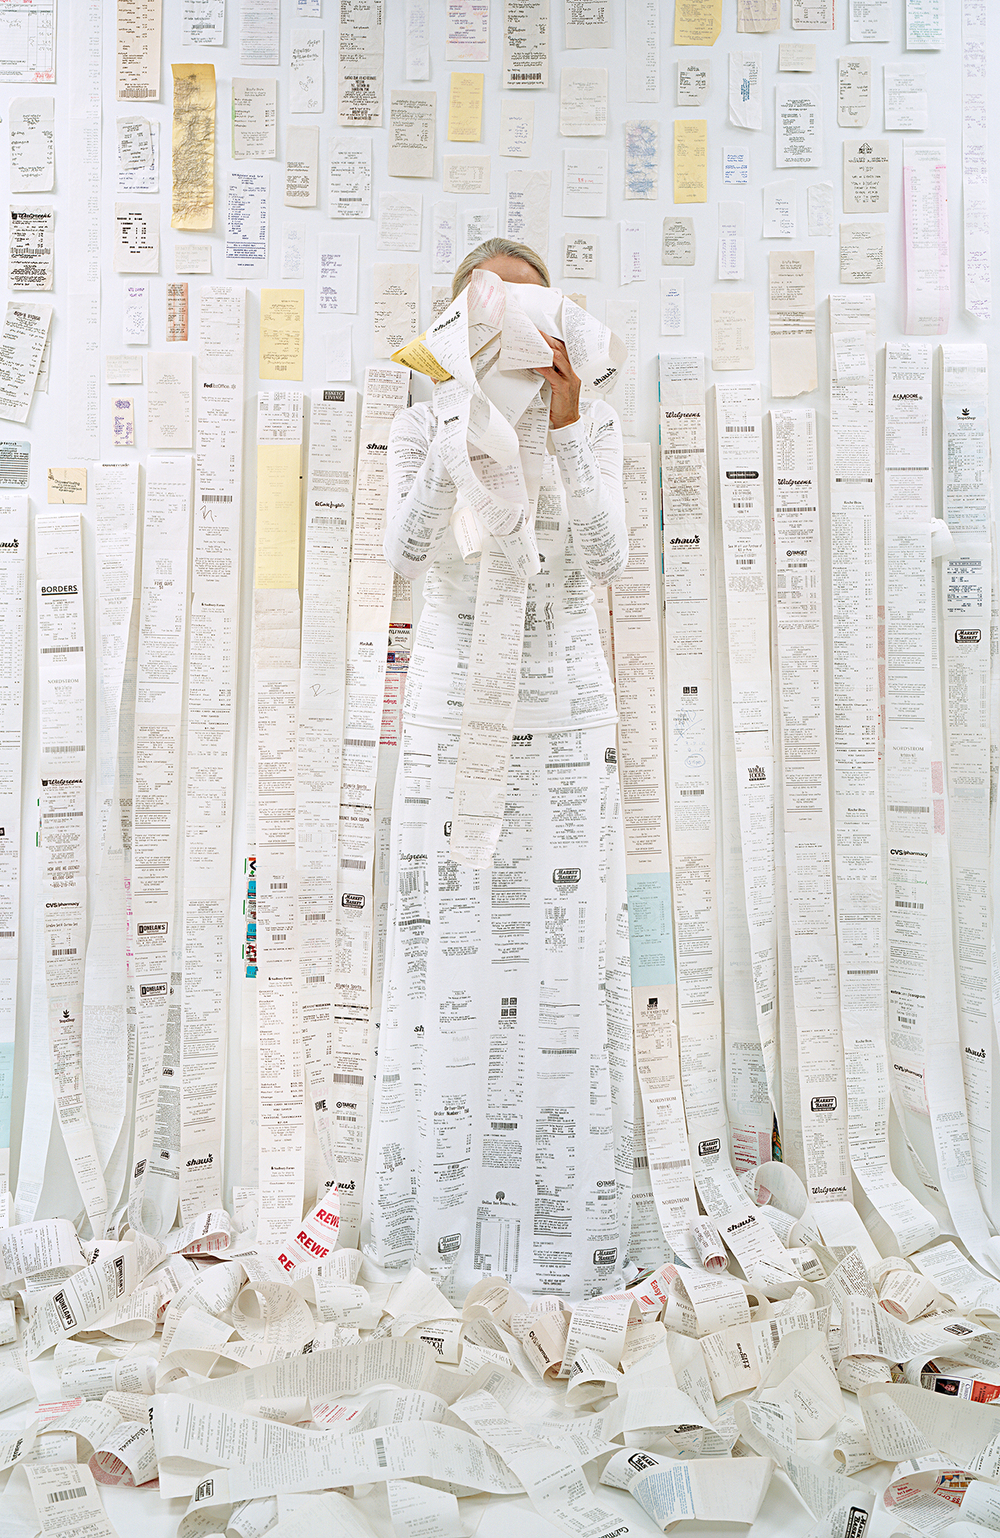 Lost in my Life (receipts), 2011